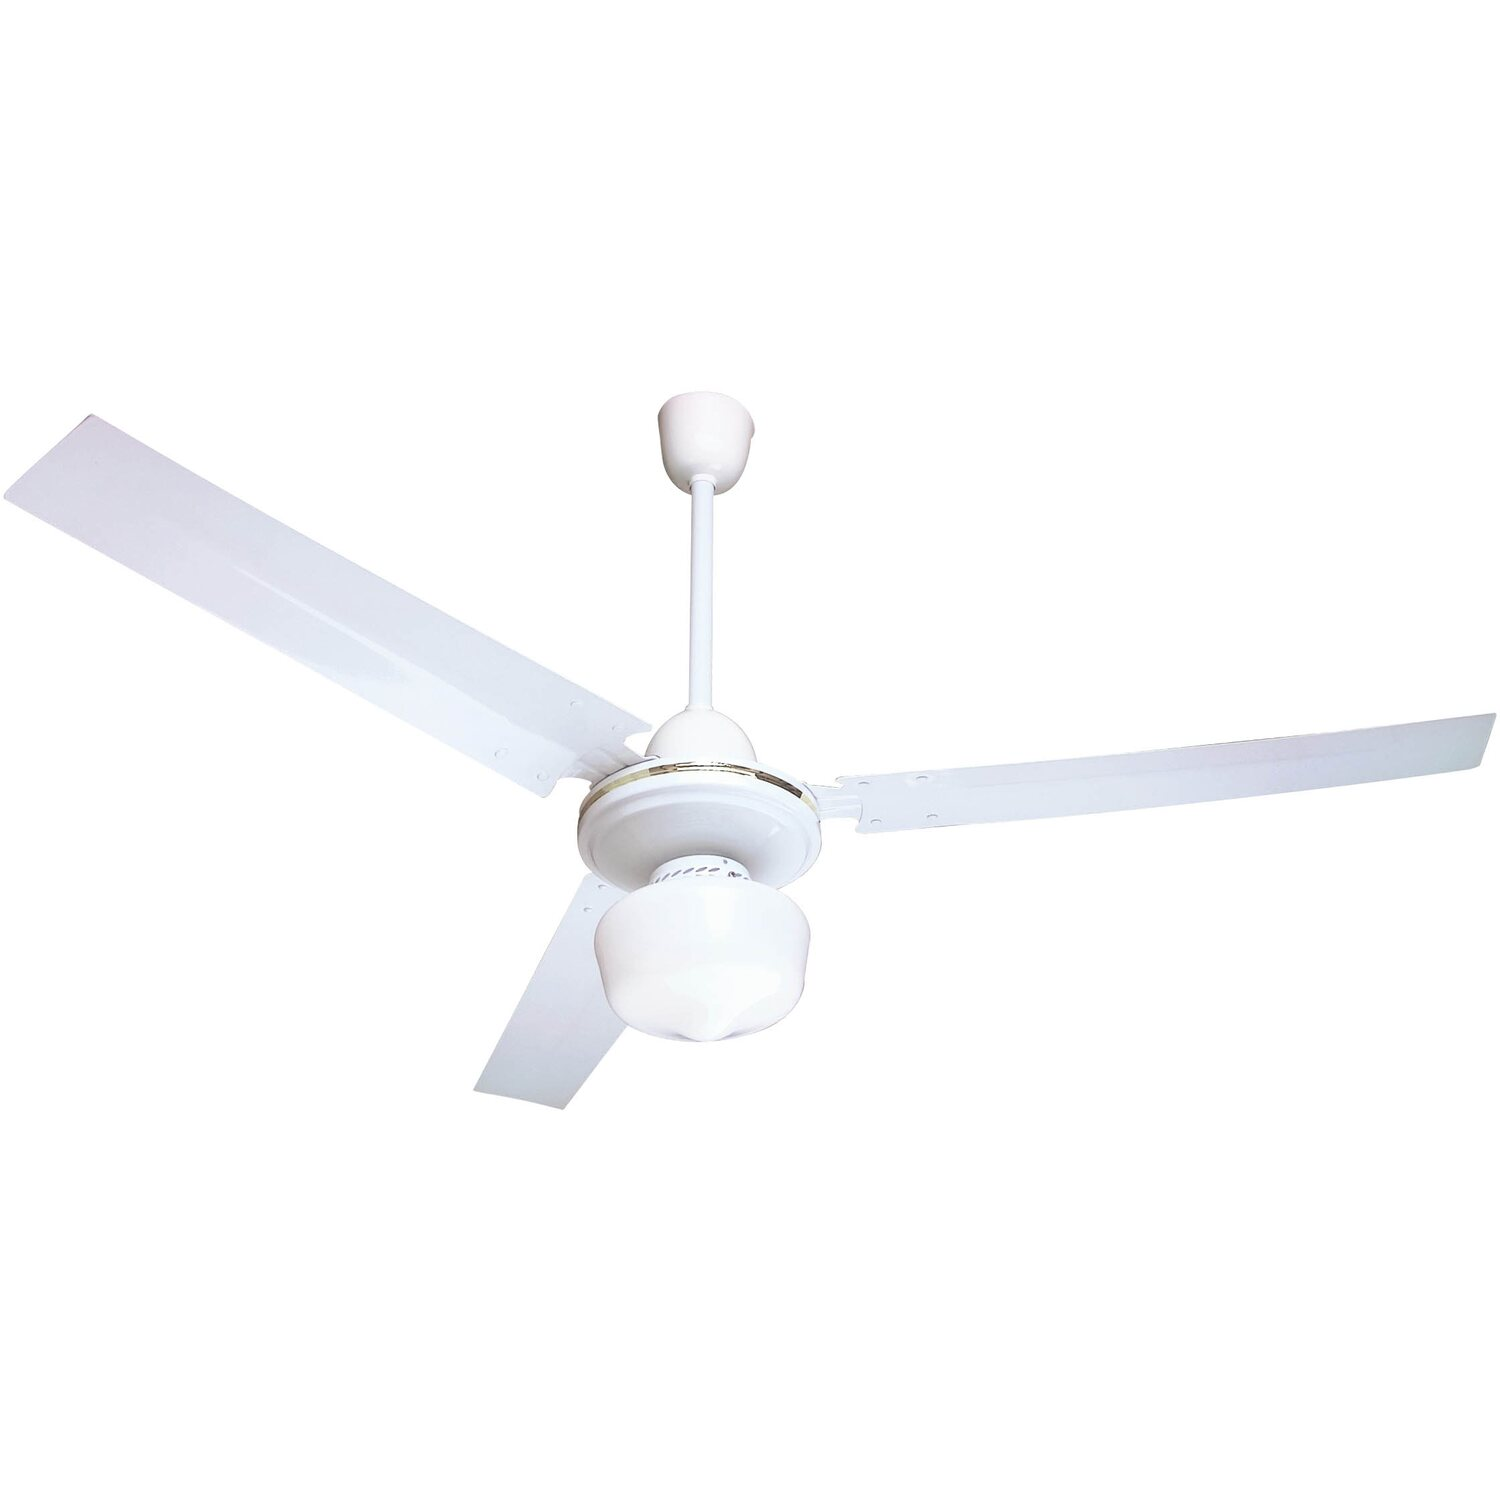 Ventilatore da soffitto con luce 120 cm acquista da obi for Obi ventilatori